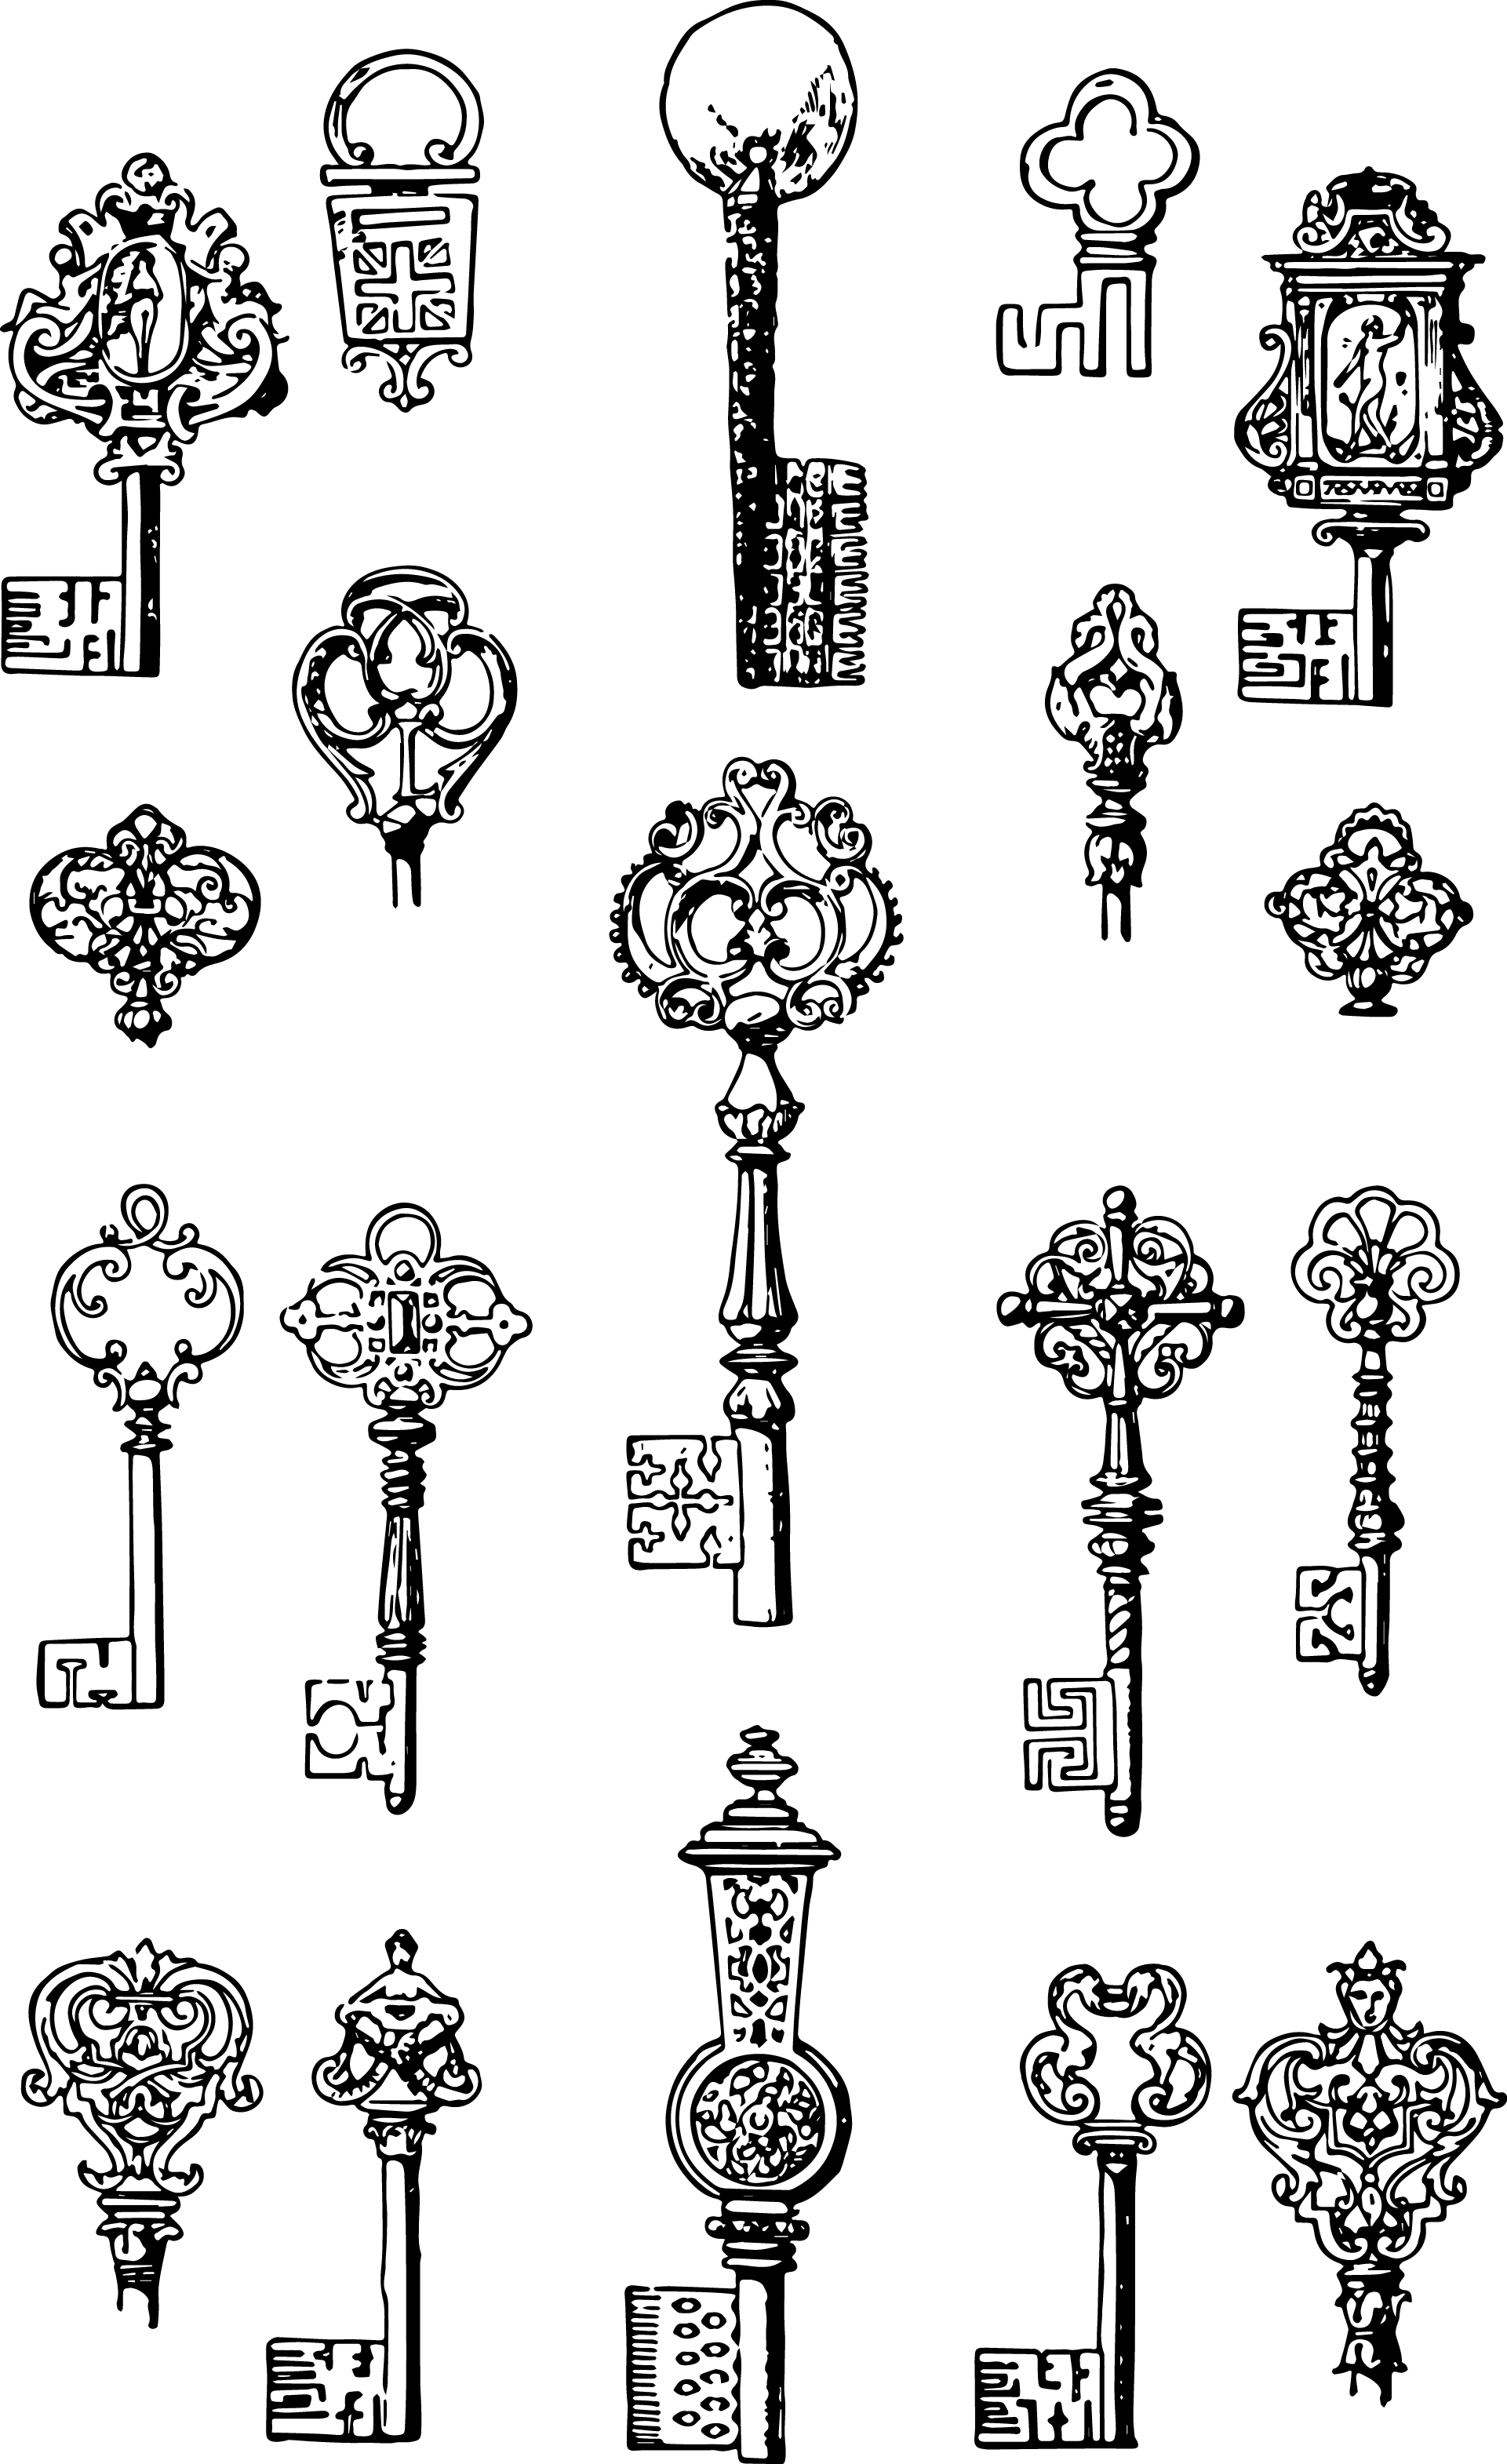 picture freeuse stock Drawing ruffles vector. Vgosn vintage keys clip